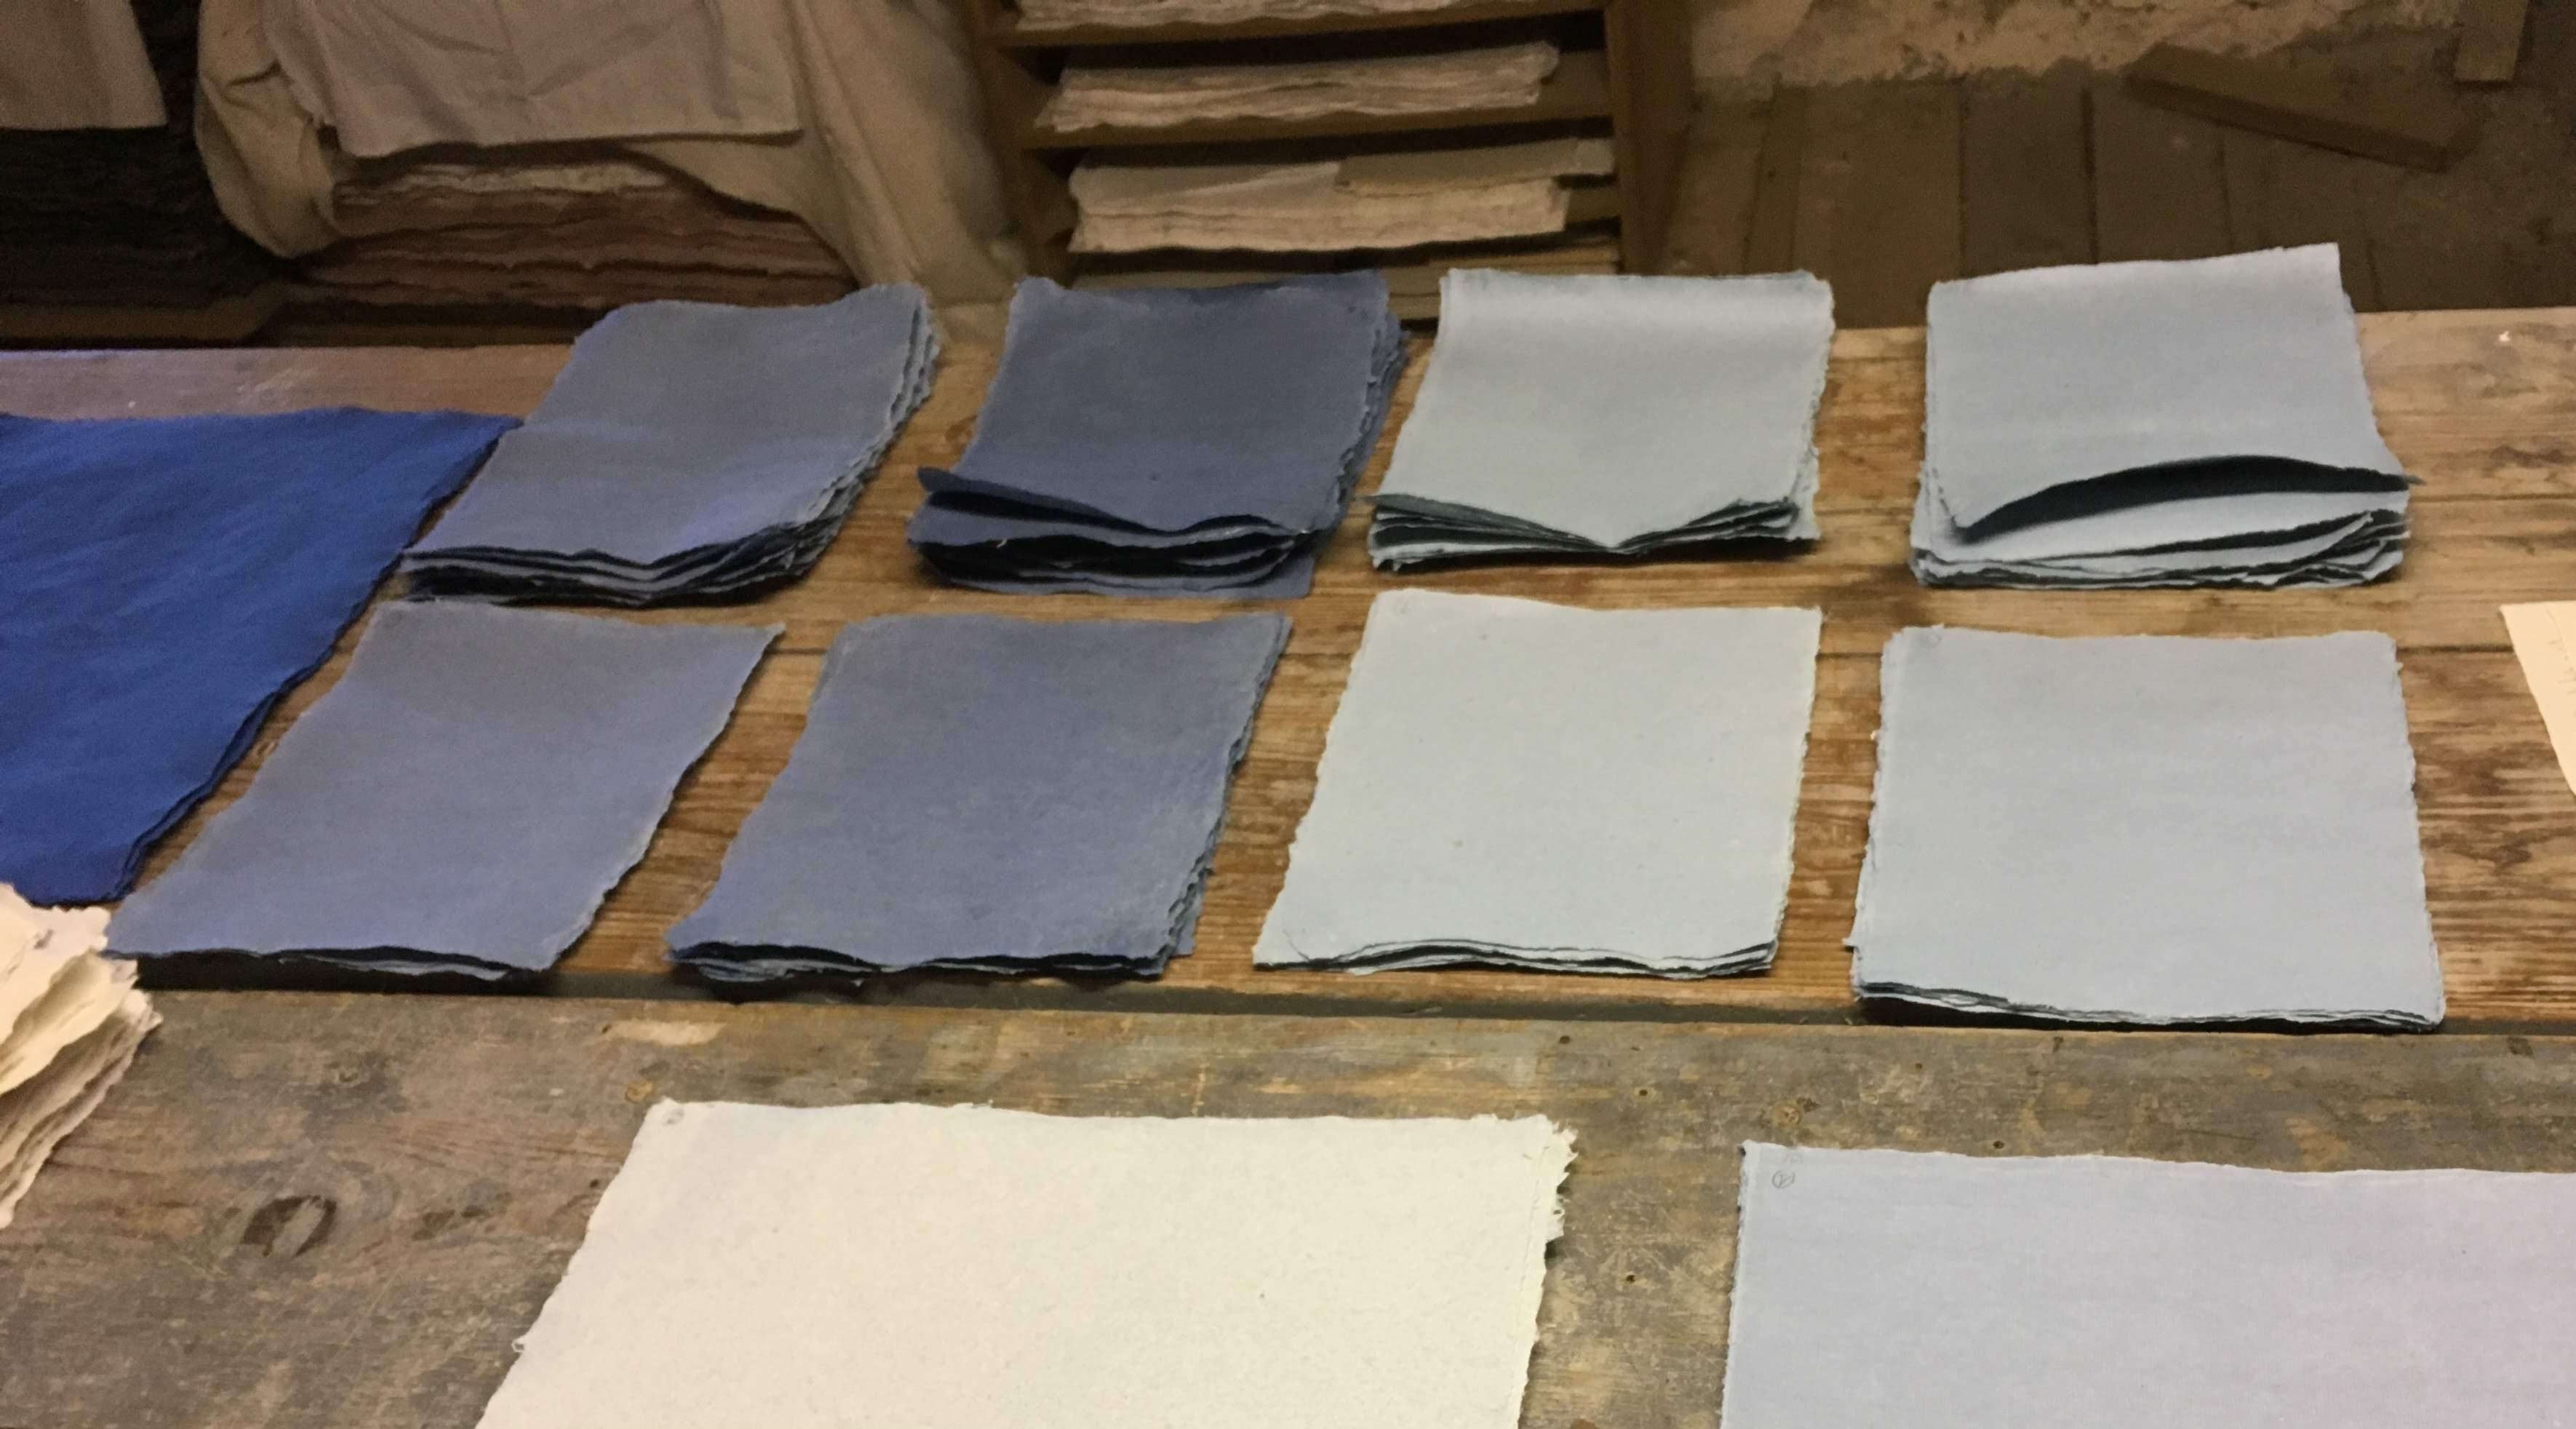 Ten small stacks of different colored blue papers lay on a rough wooden table. There is a very bright blue paper cut off at far left and in the foreground one of the stacks is off-white.